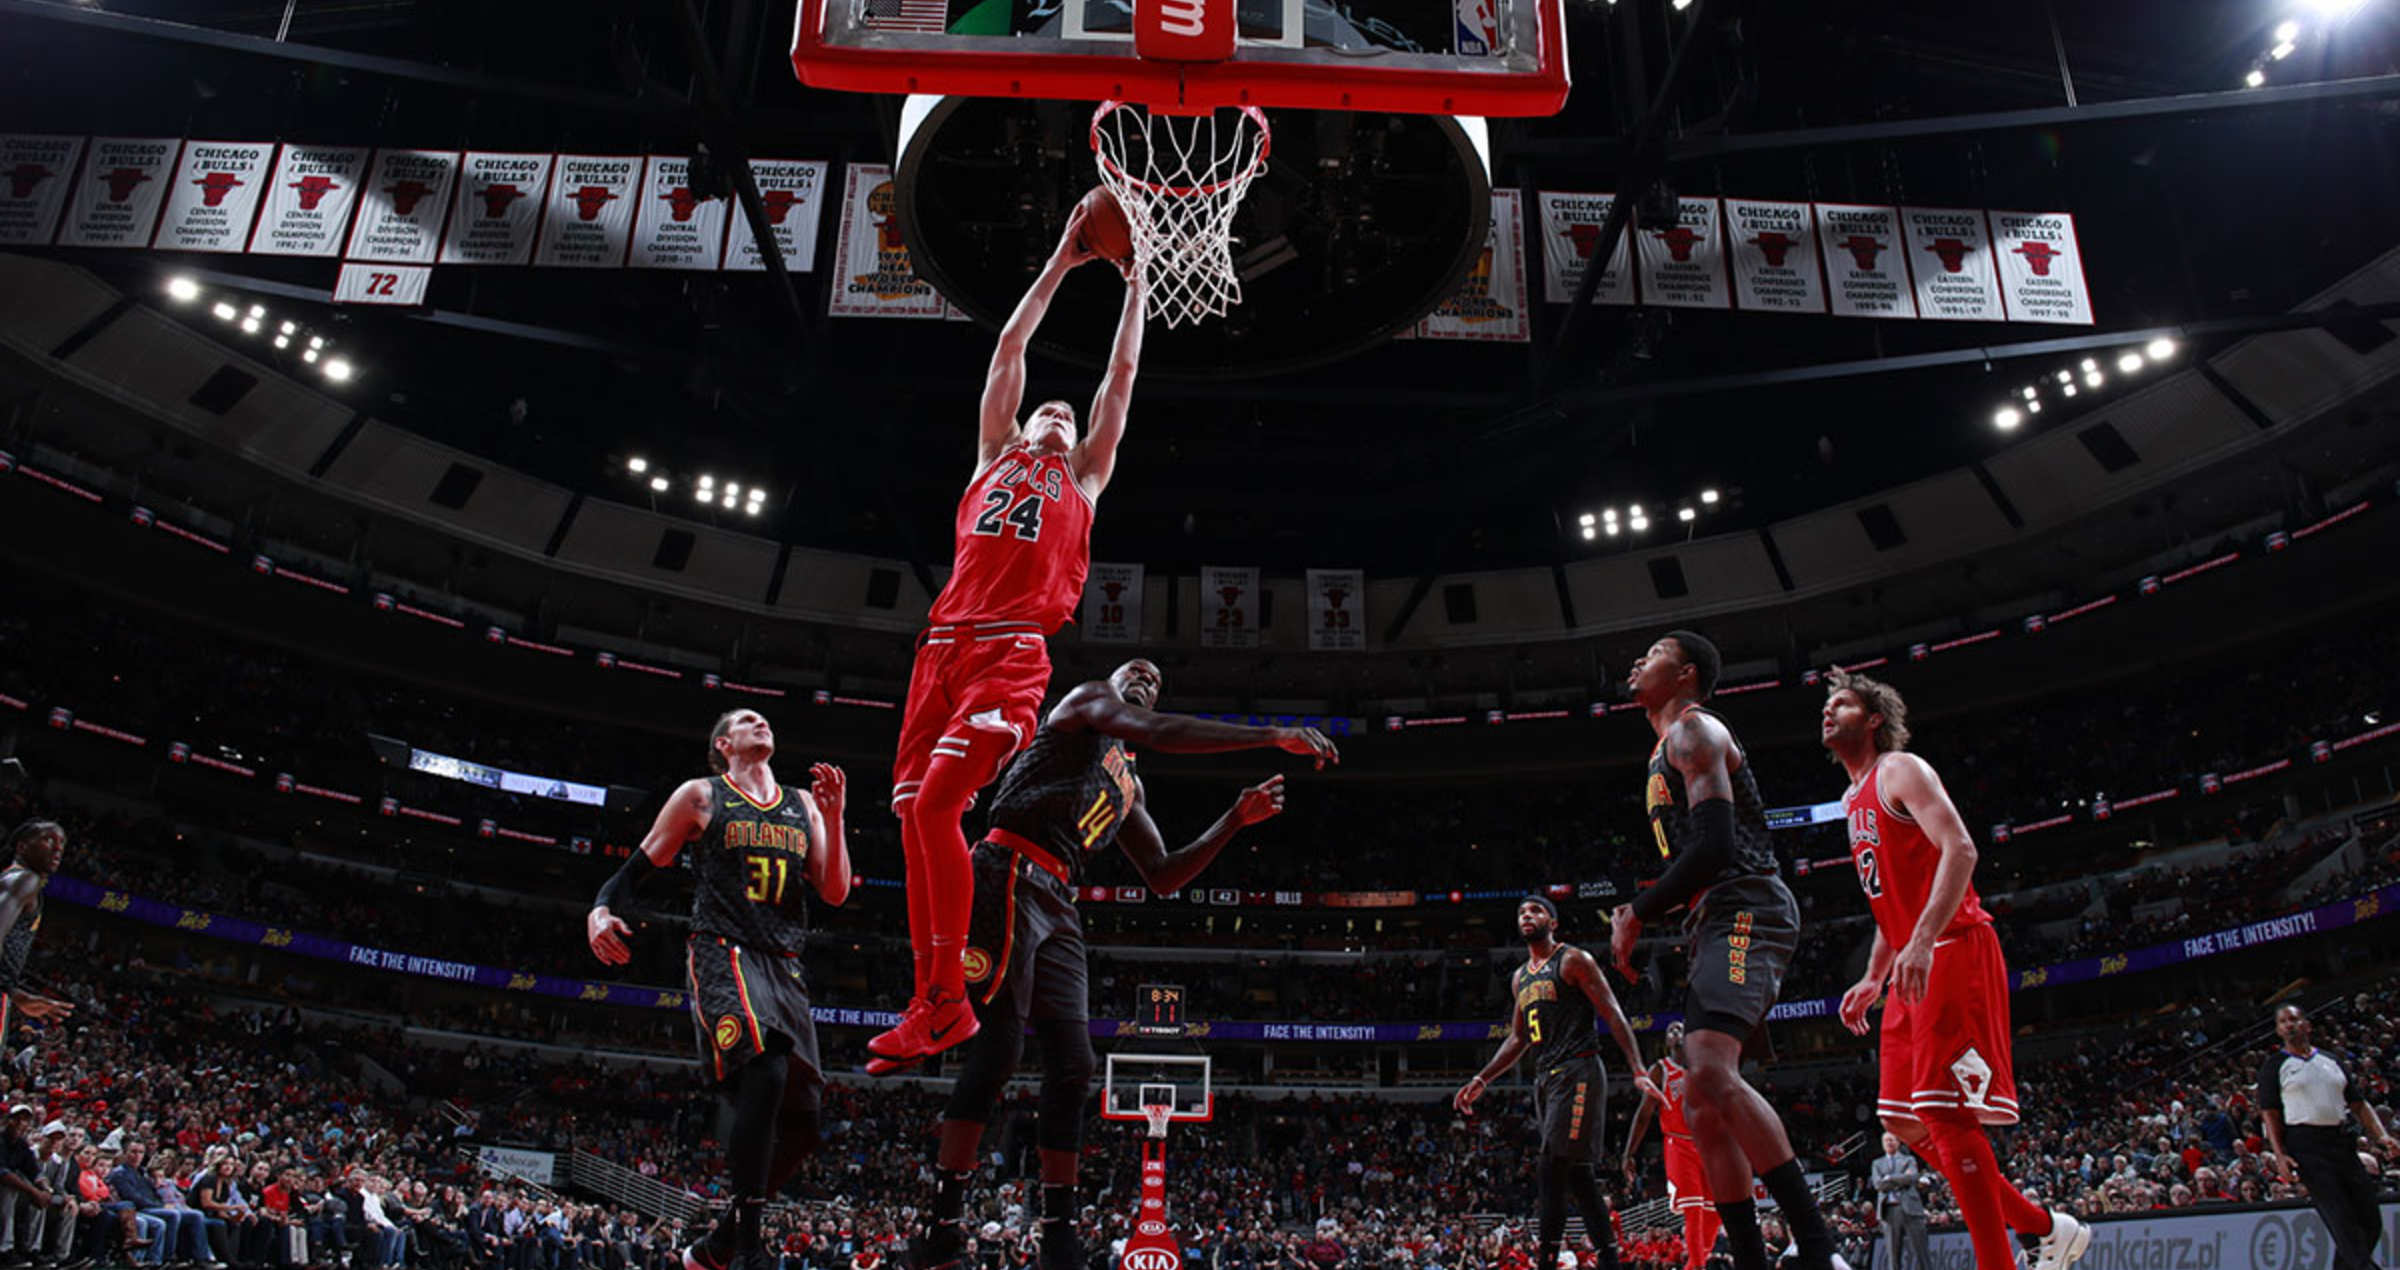 Lauri Markkanen #24 of the Chicago Bulls scores against the Atlanta Hawks on October 26, 2017 at the United Center, Chicago, Illinois.